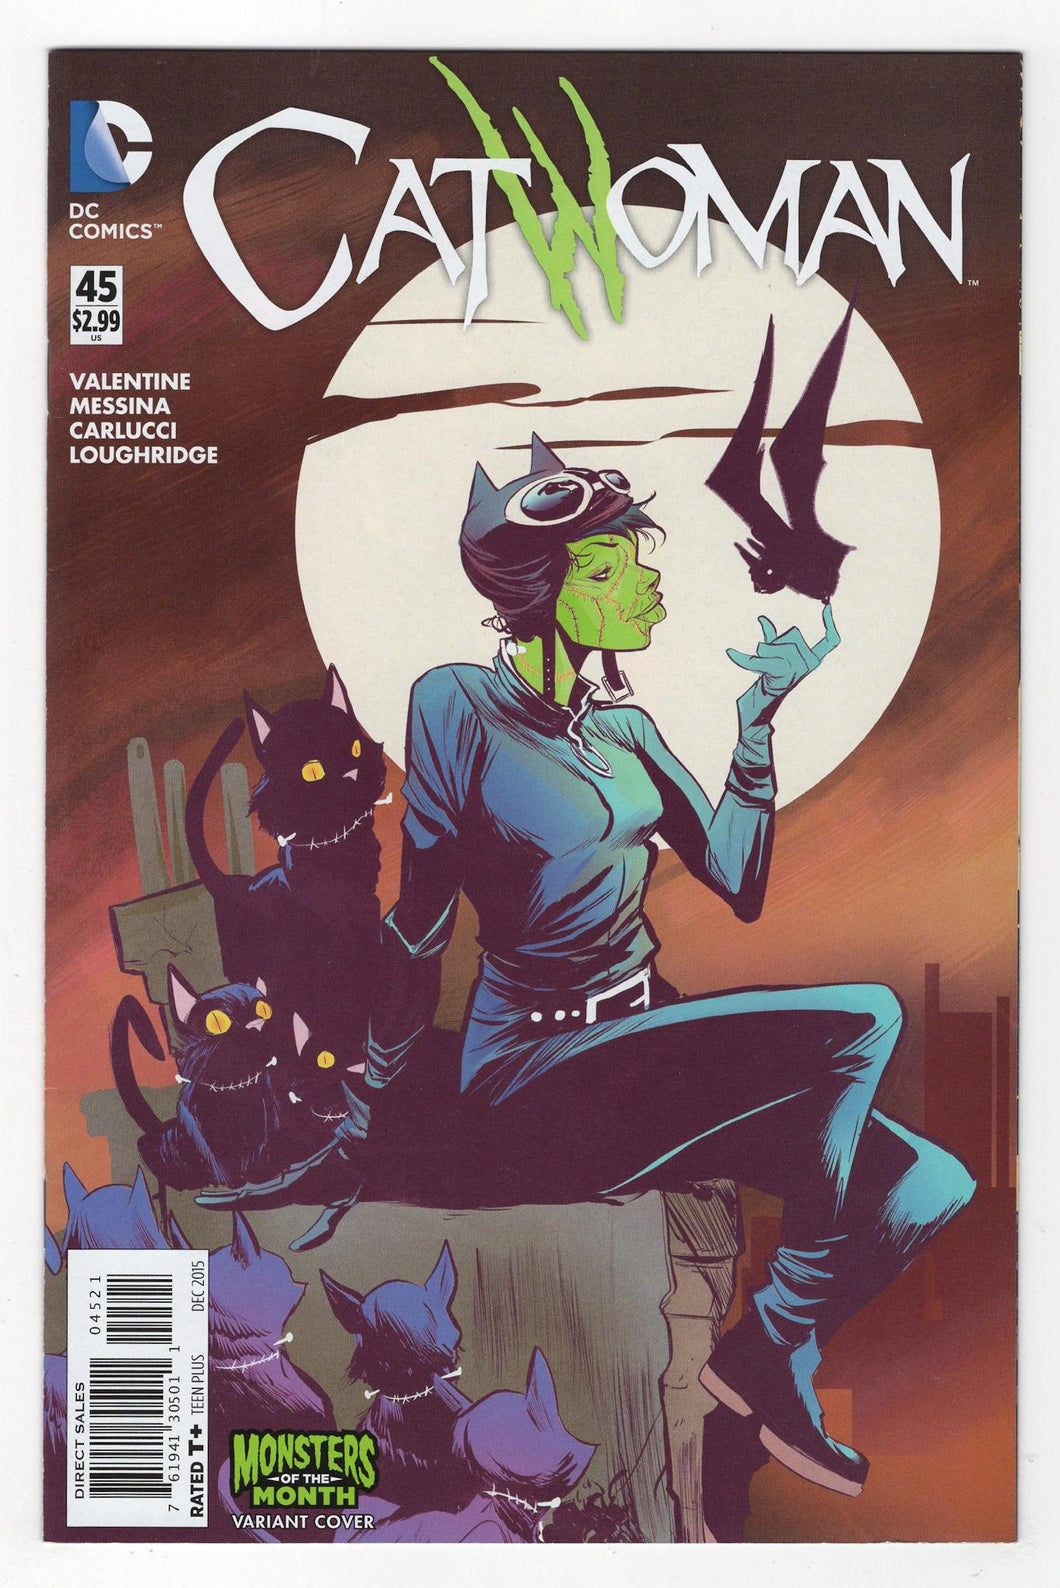 Catwoman #45 Variant Cover Front